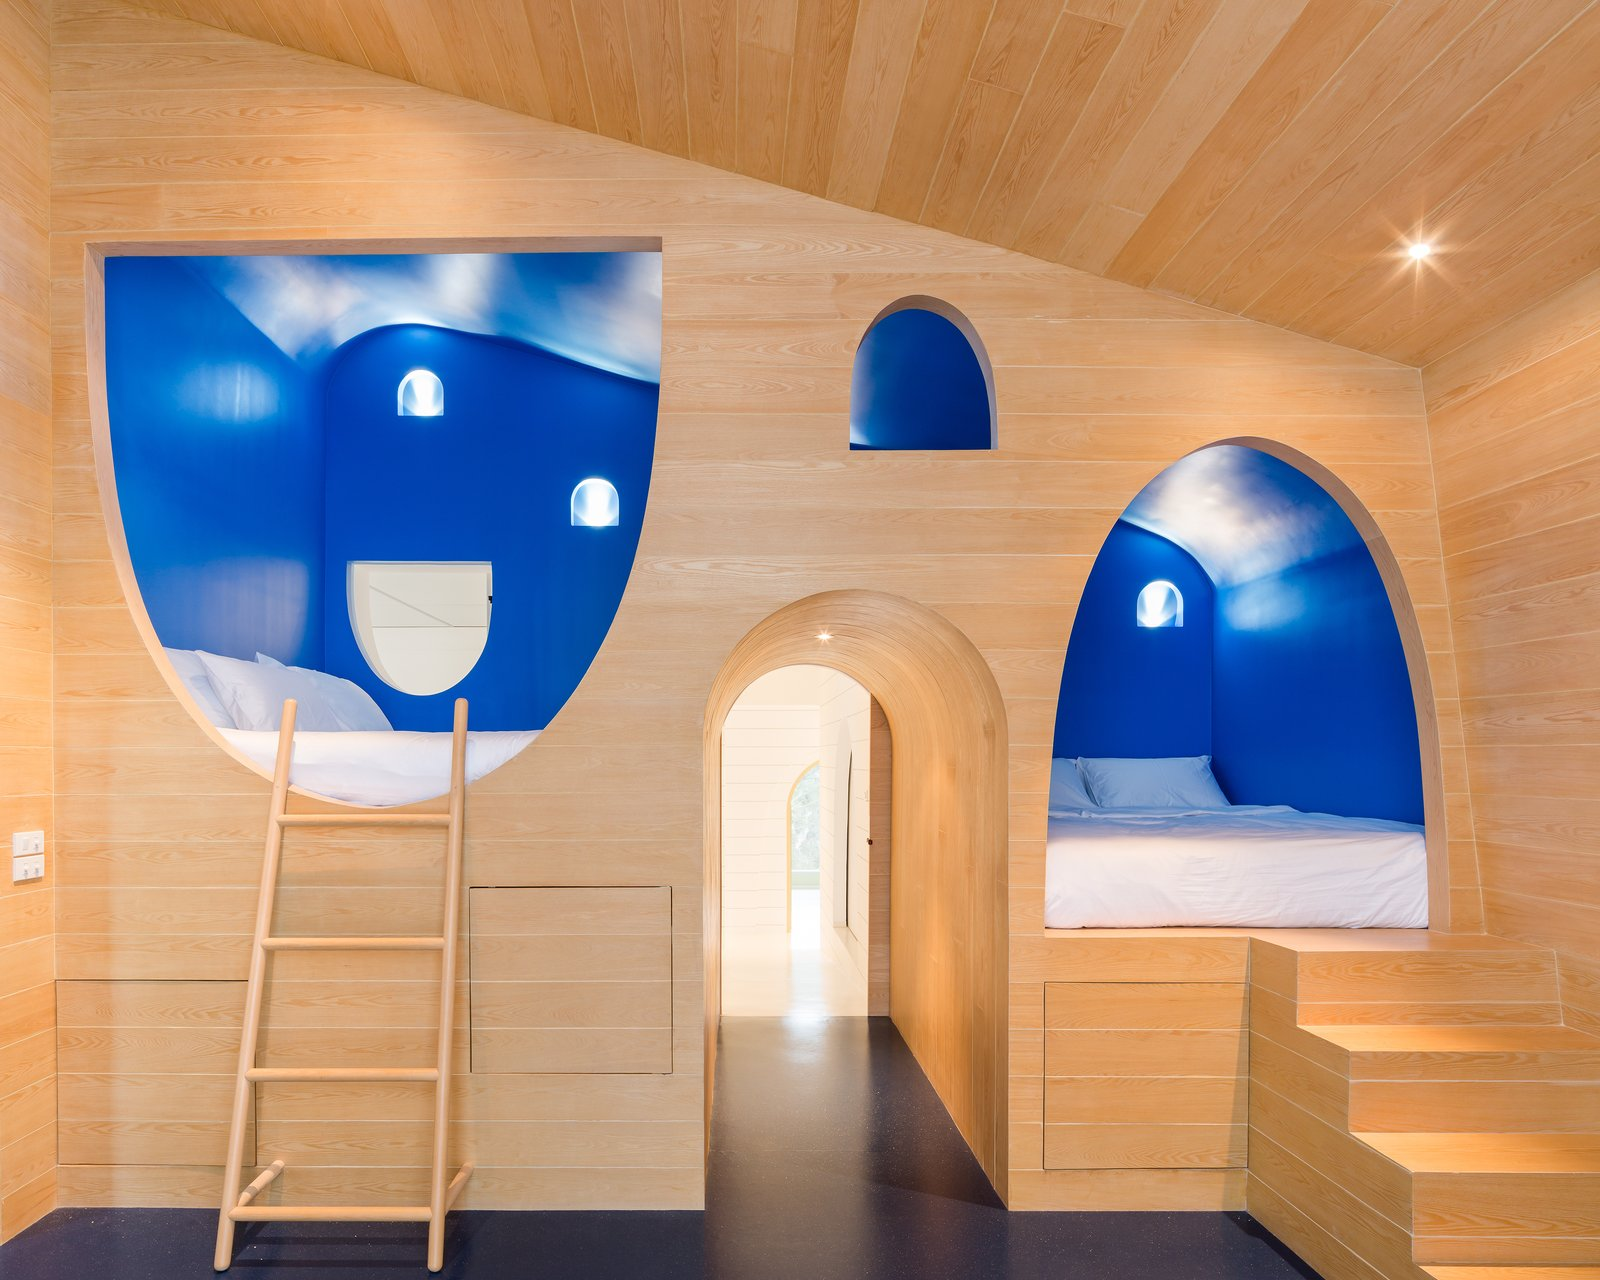 These 8 Toddler Room Ideas Will Make You Want to Be a Kid Again